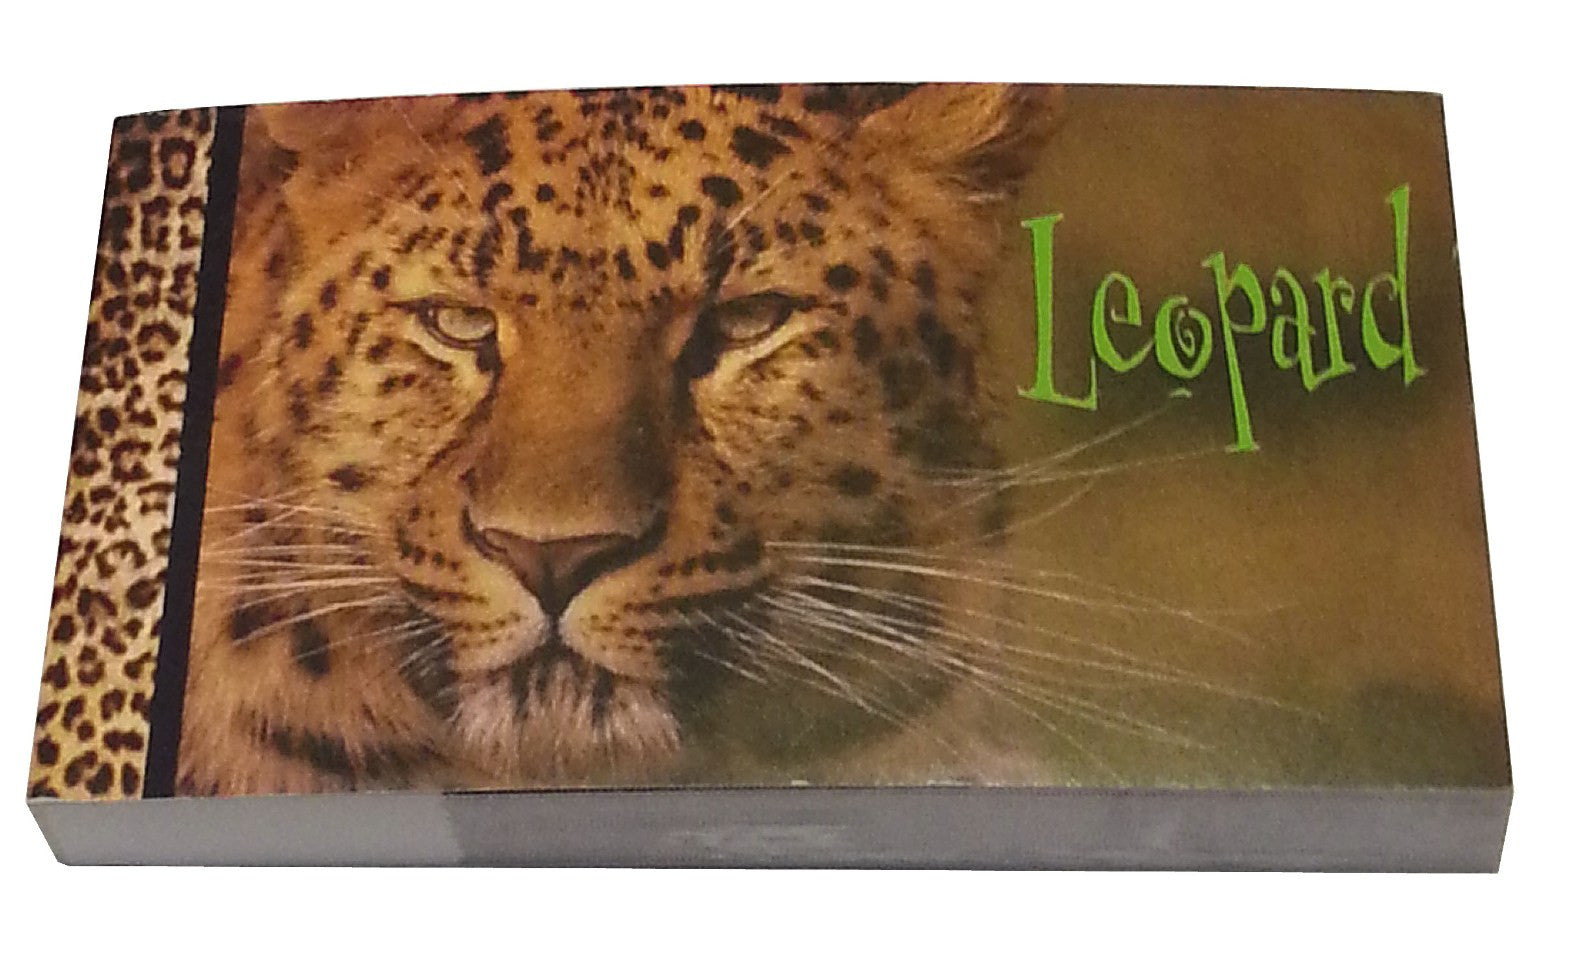 Leopard Flipbook - Off The Wall Toys and Gifts